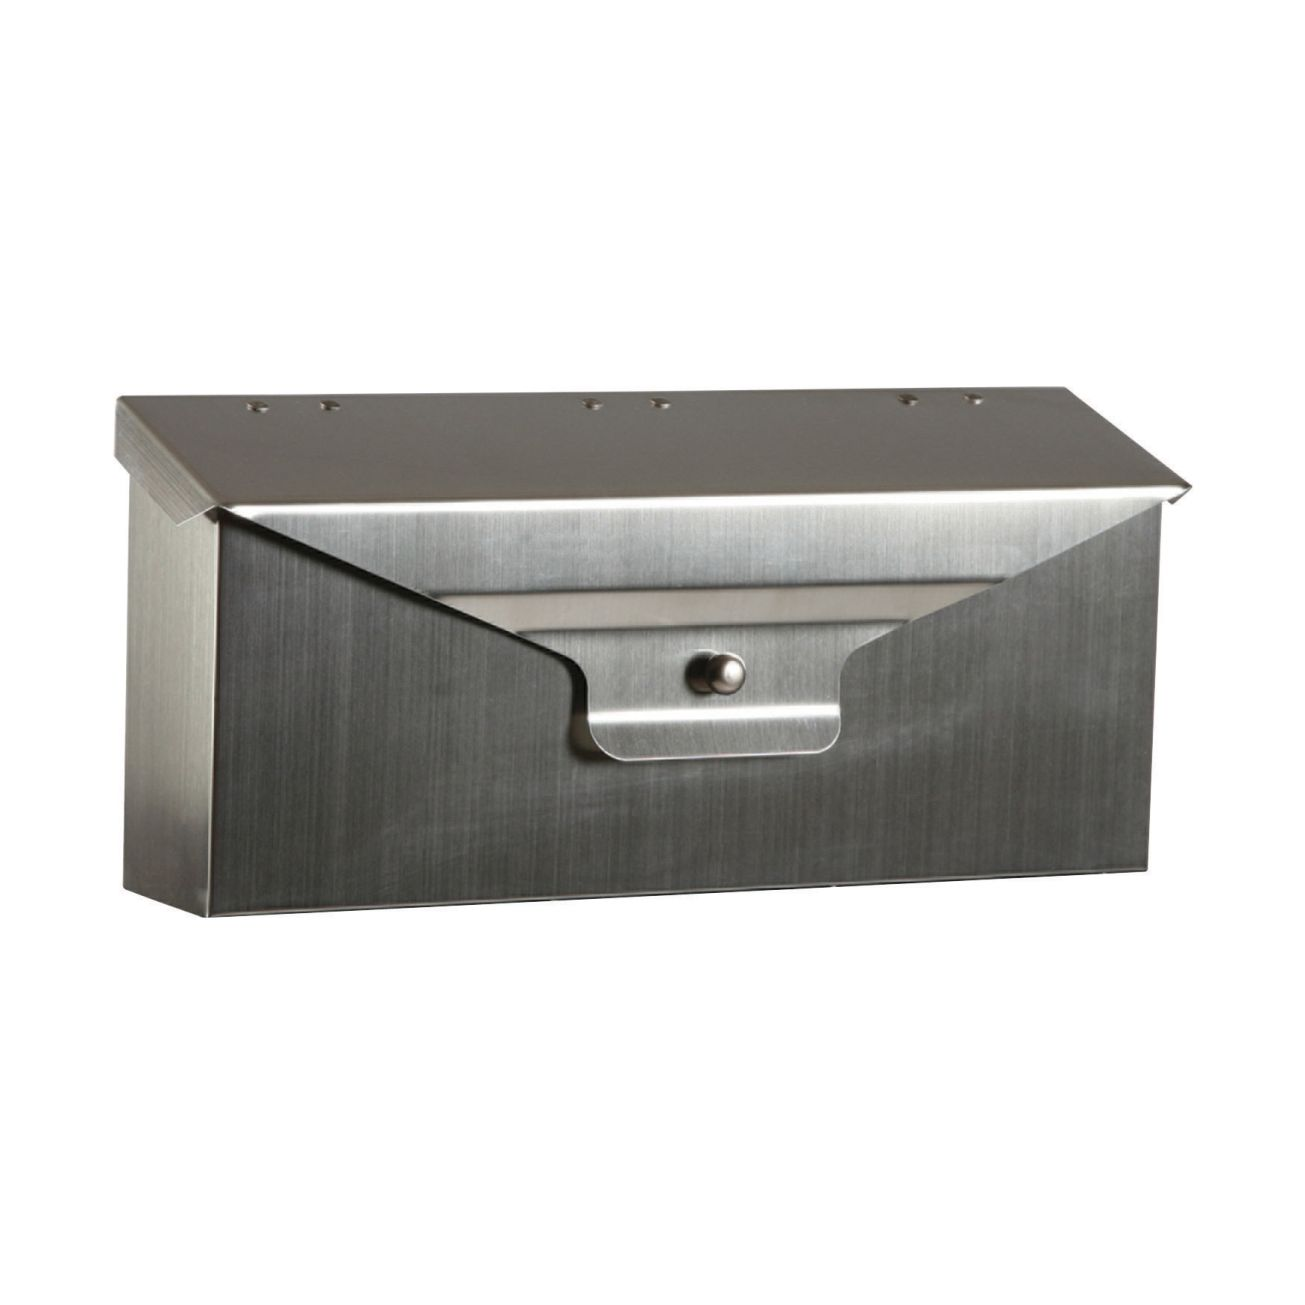 wall mount residential mailboxes. Gibraltar D\u0027Elegance Wall Mount Steel Mailbox (SM16KB01) - House Mailboxes Ace Hardware | In My Dream Pinterest Mount, Residential